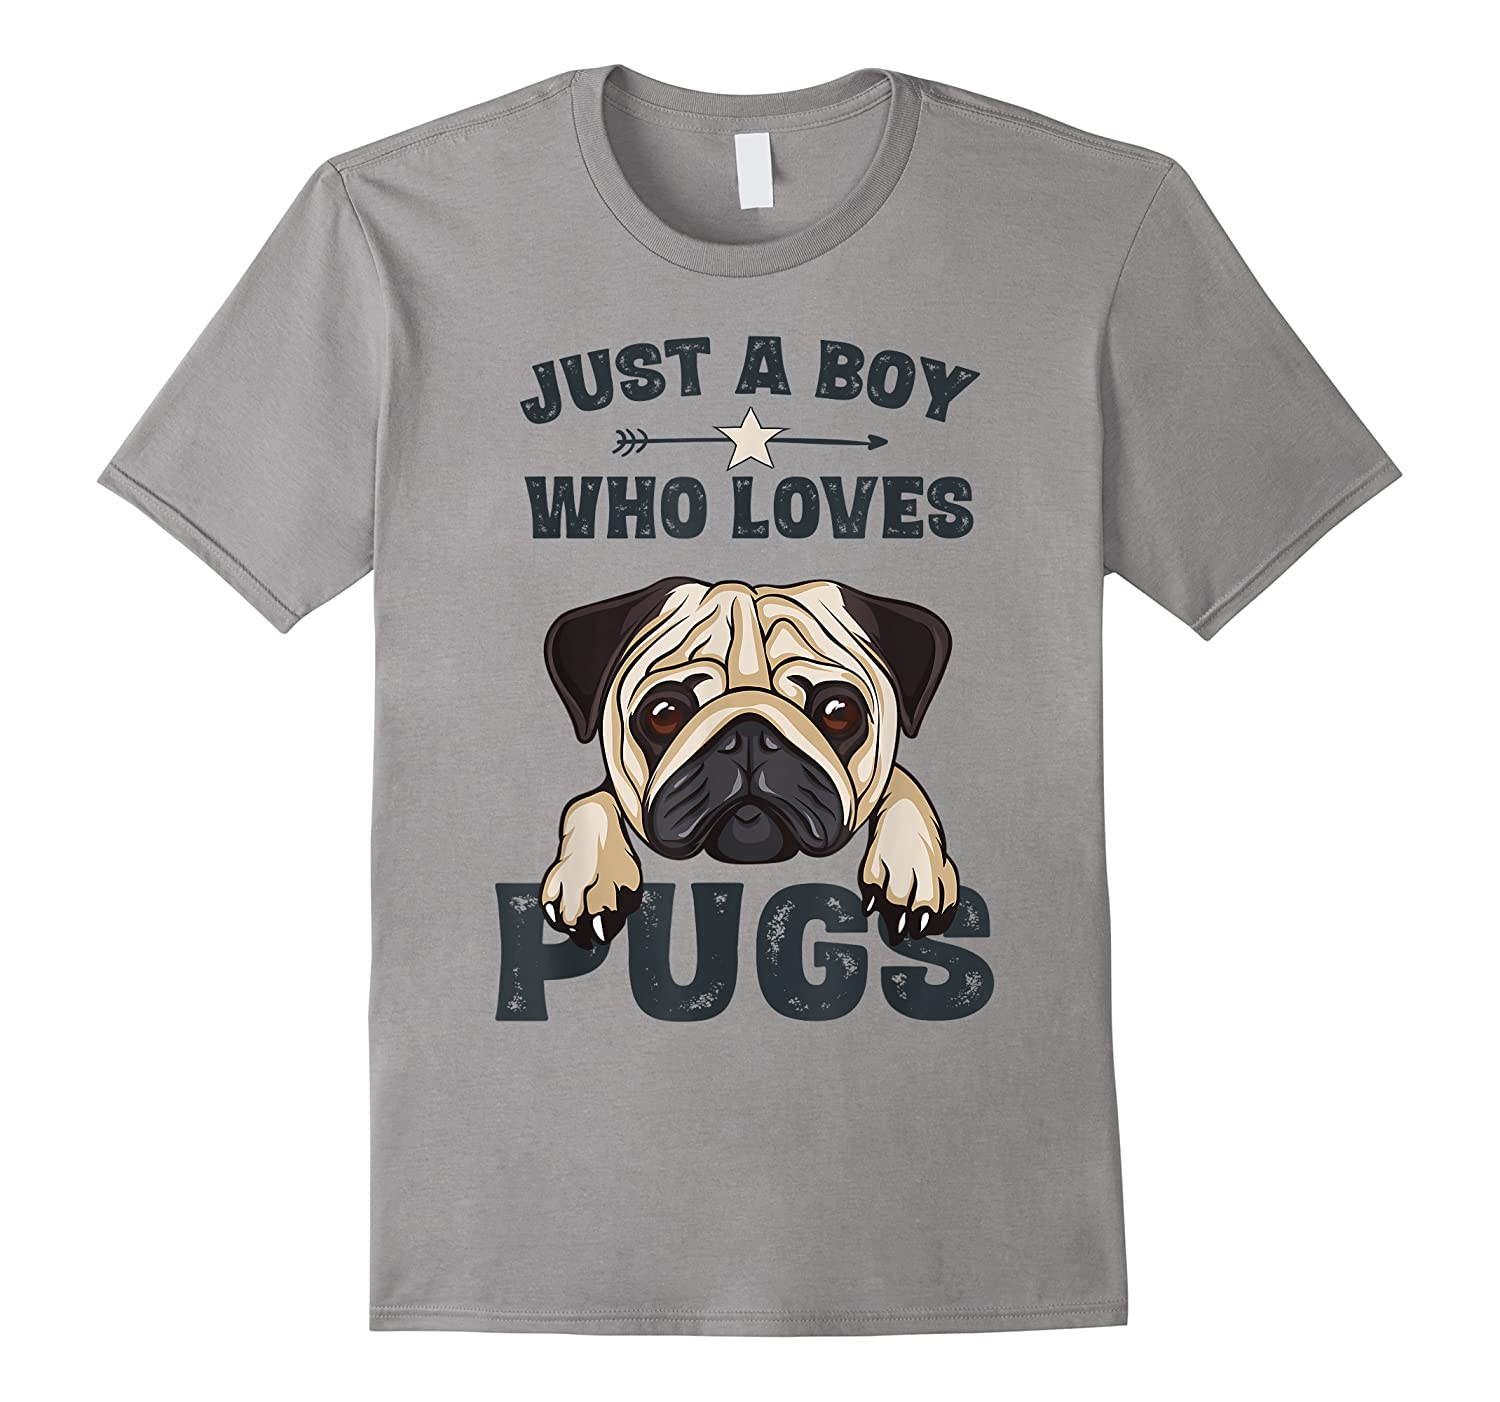 Love Pugs Funny Cute Pug Lover Saying Gift For Boys Shirts